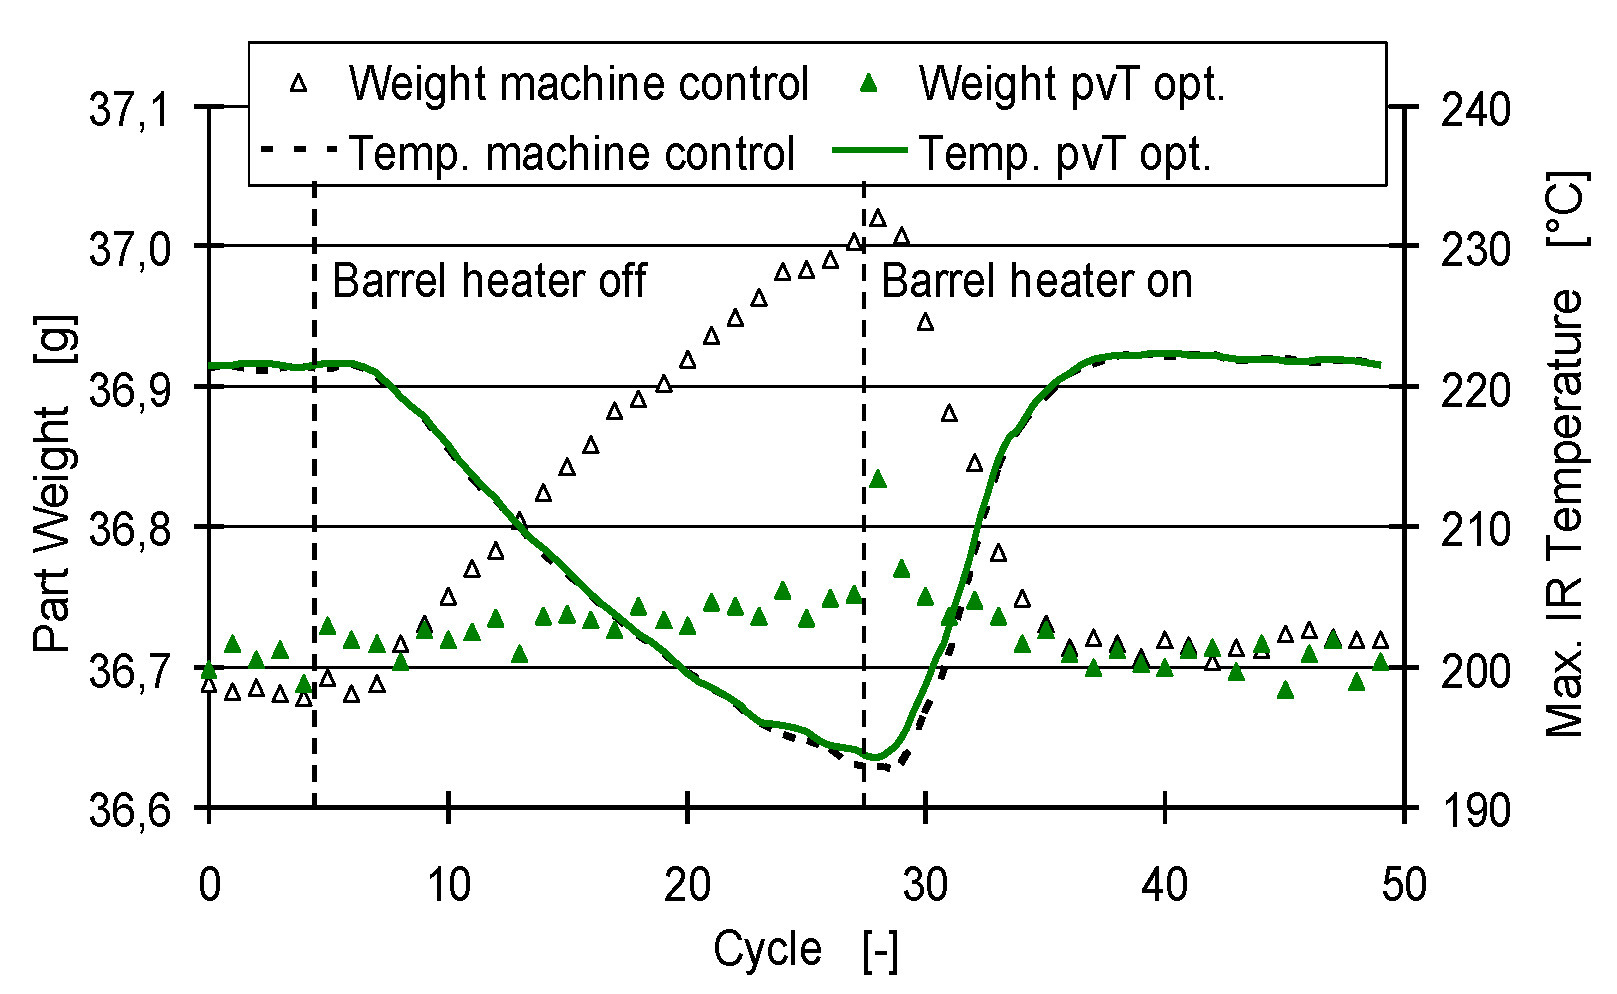 Compensation of thermal fluctuations by self-optimizing in injection molding